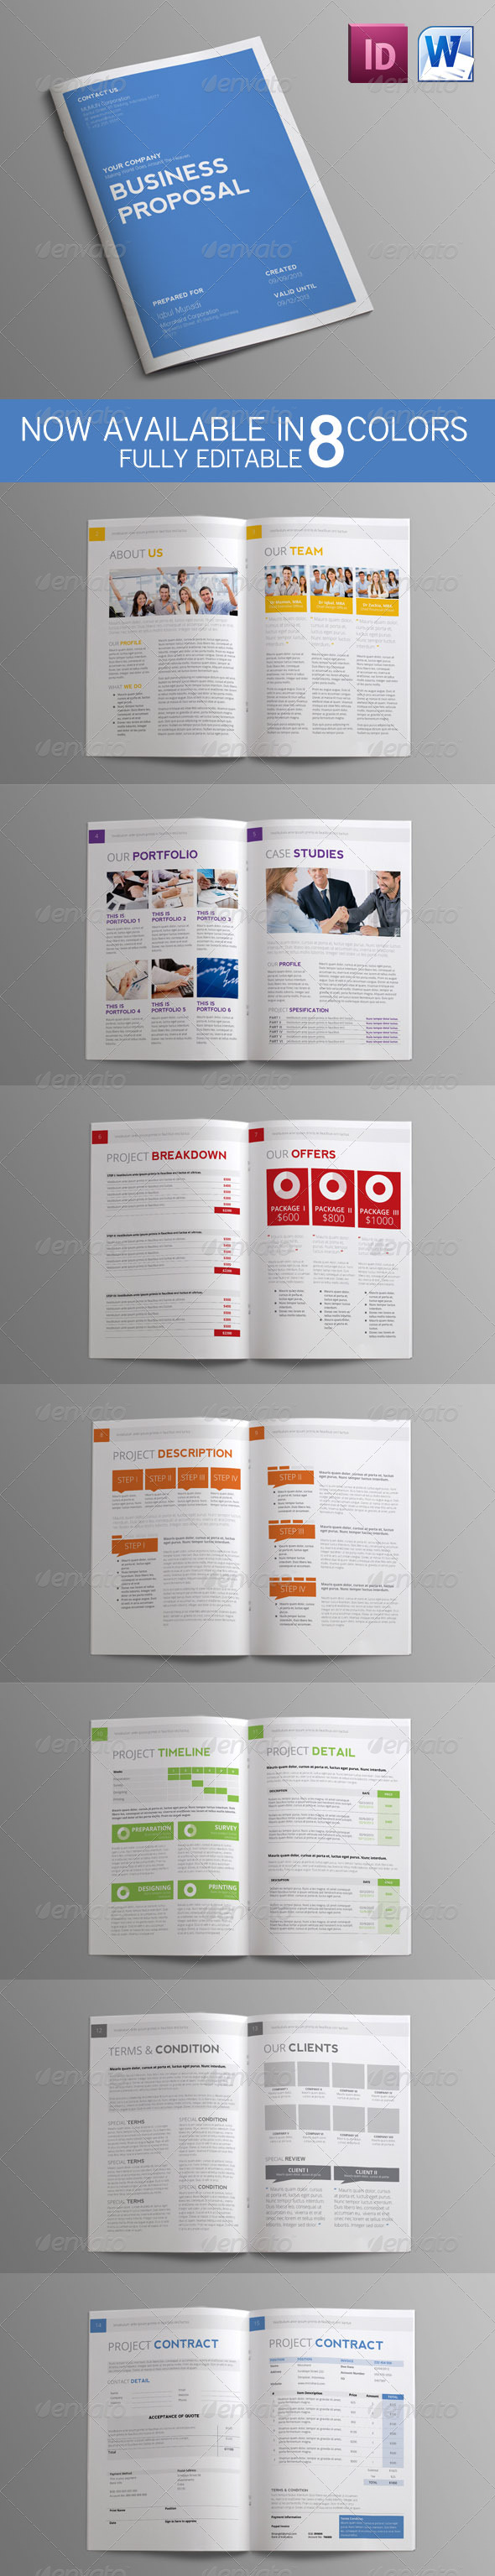 Sleman Clean Proposal Template - Proposals & Invoices Stationery ...